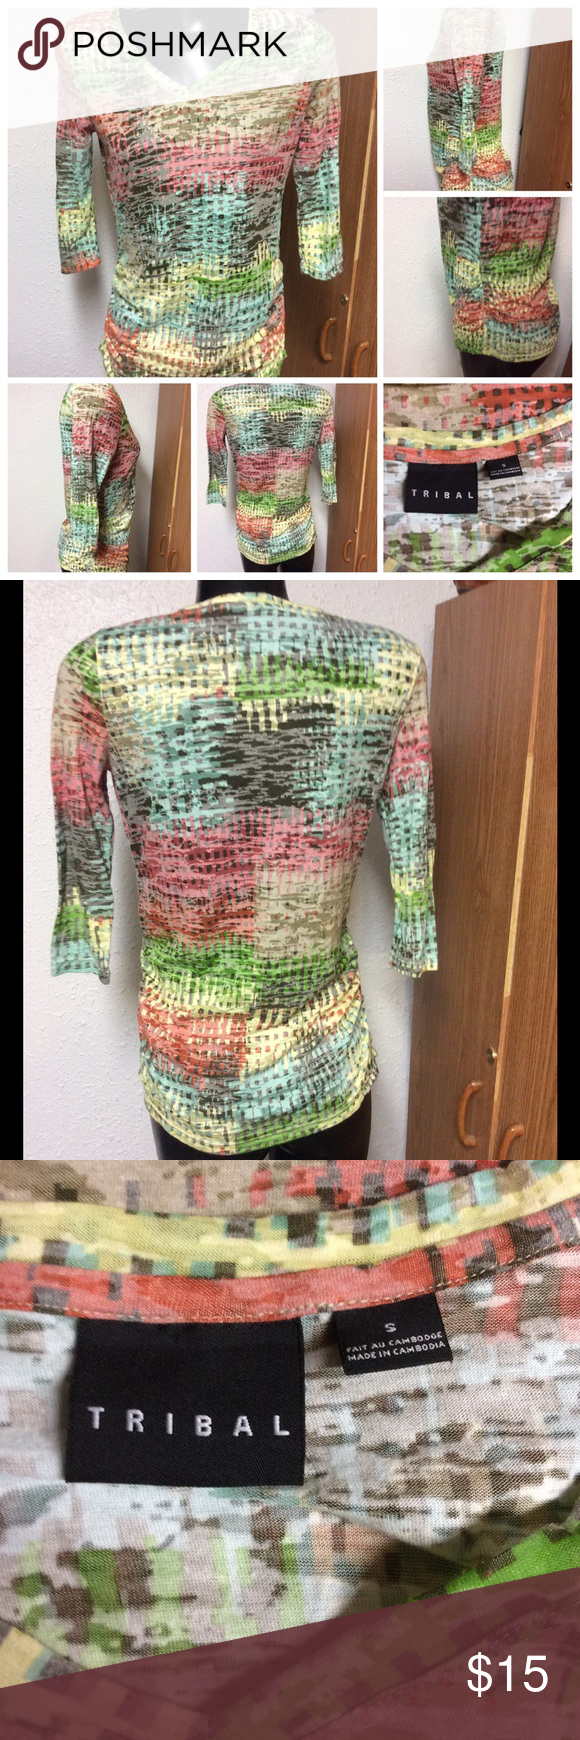 Tribal Top Semi sheer vibrant burnout tee. 3/4 sleeve. Vee neckline. Gently used. Guessing it's a polyester blend top. Tribal Tops Tees - Long Sleeve